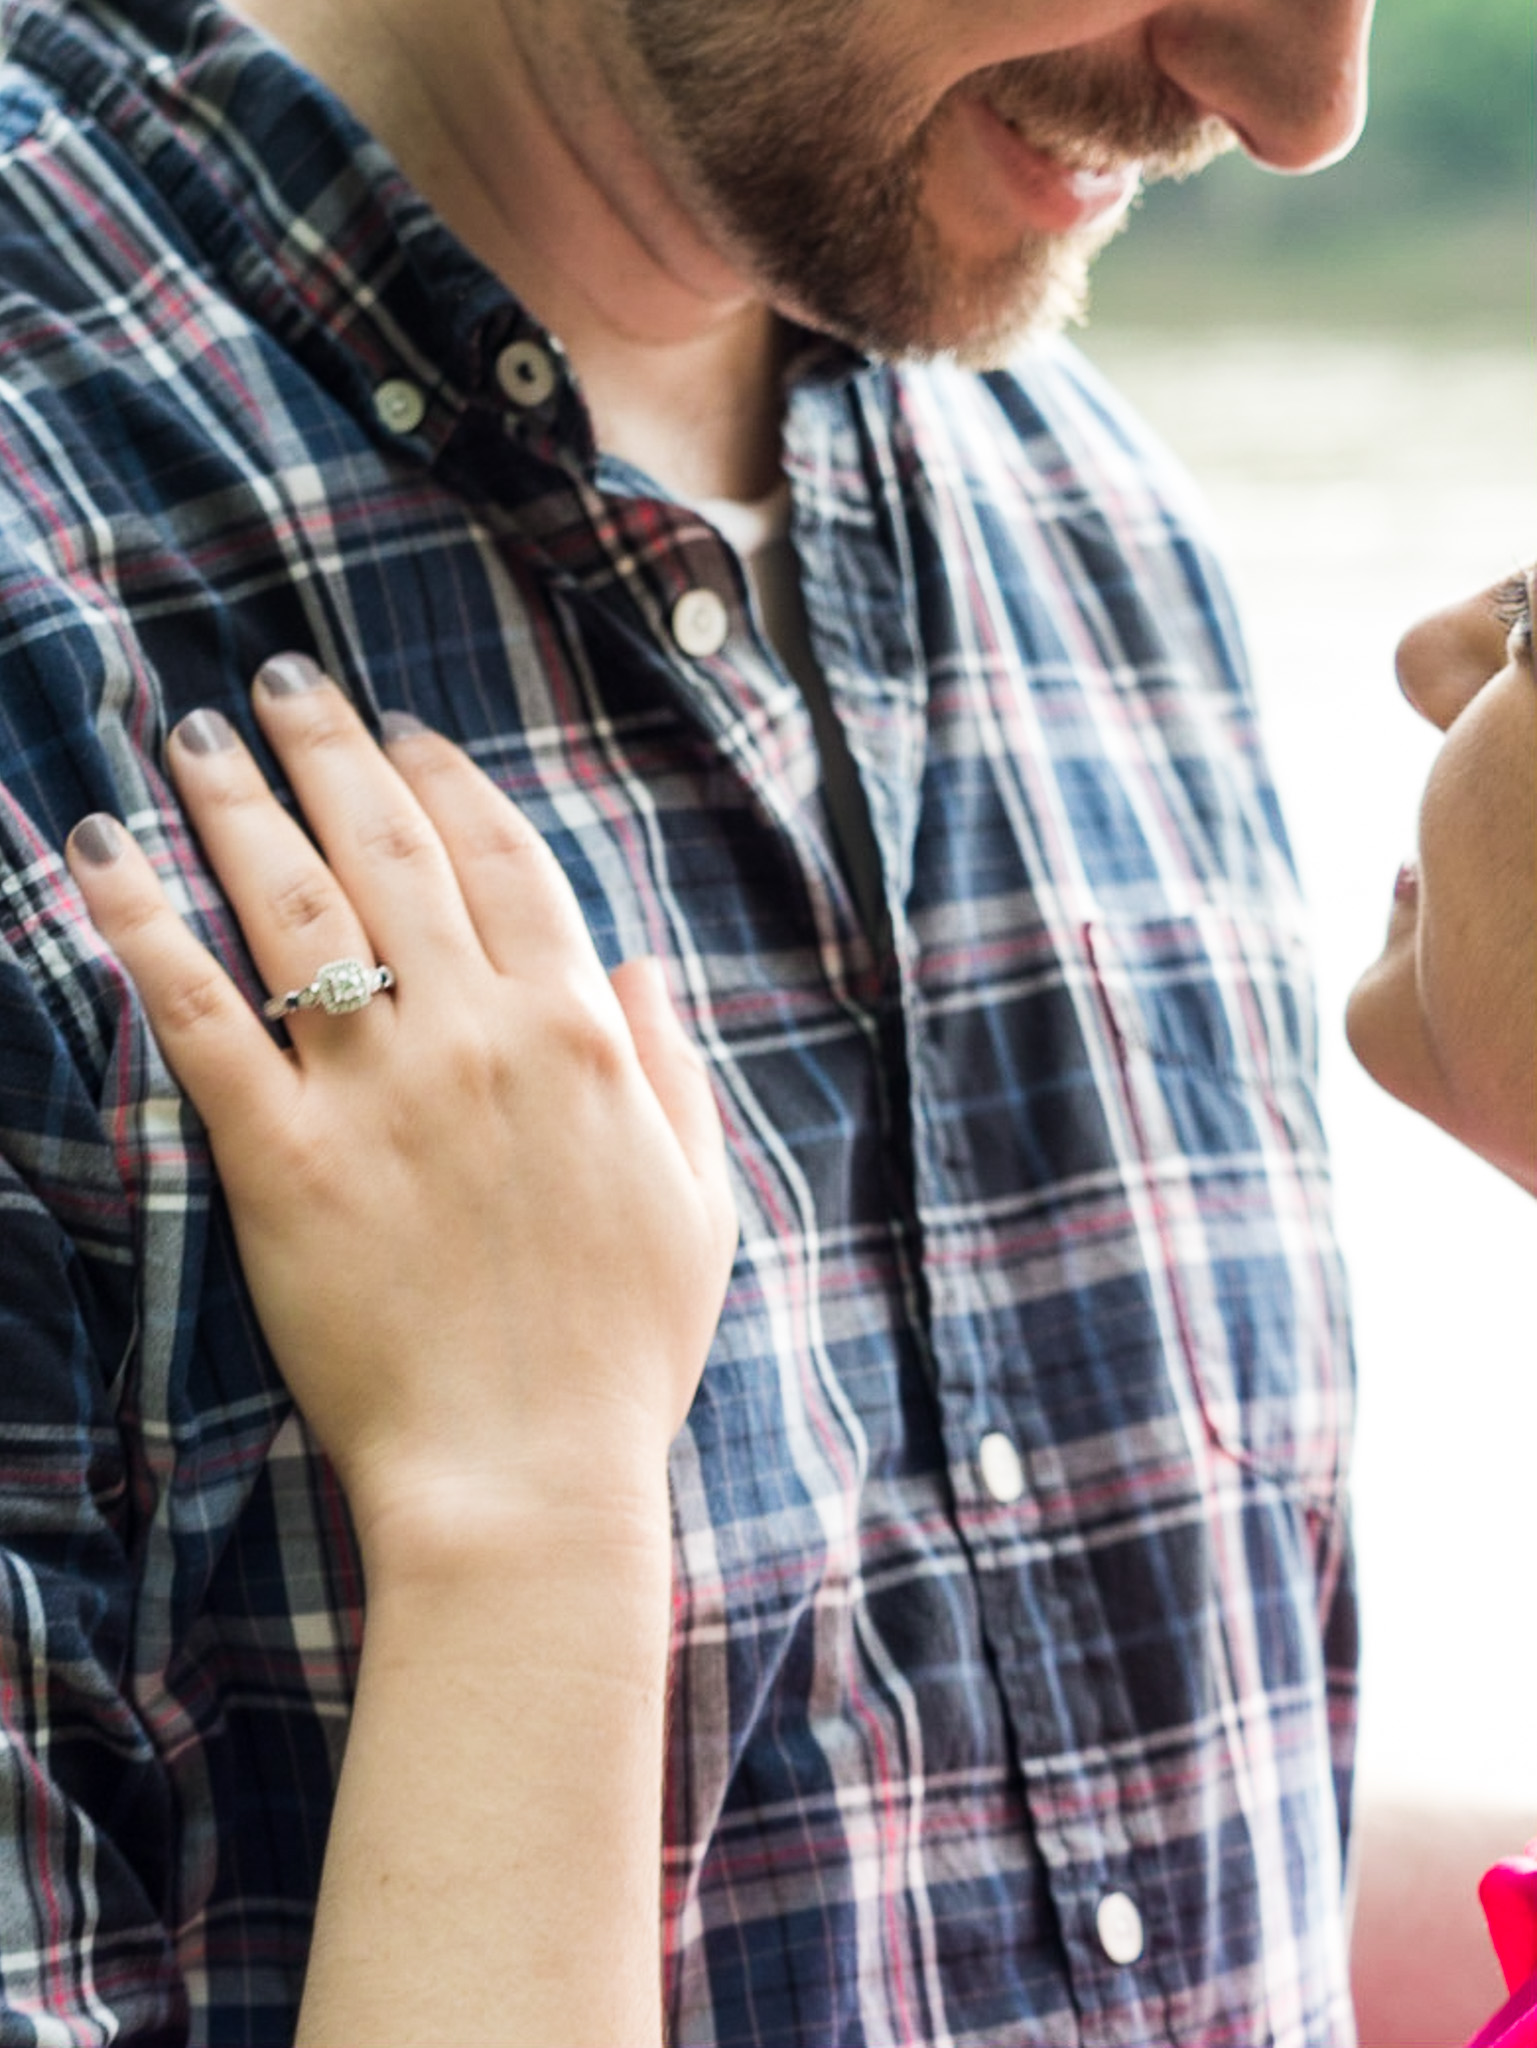 Engagement, Photography, Photographer, Columbia SC, Riverwalk, USC, College Campus, Couple, Ring, Engagement Ring